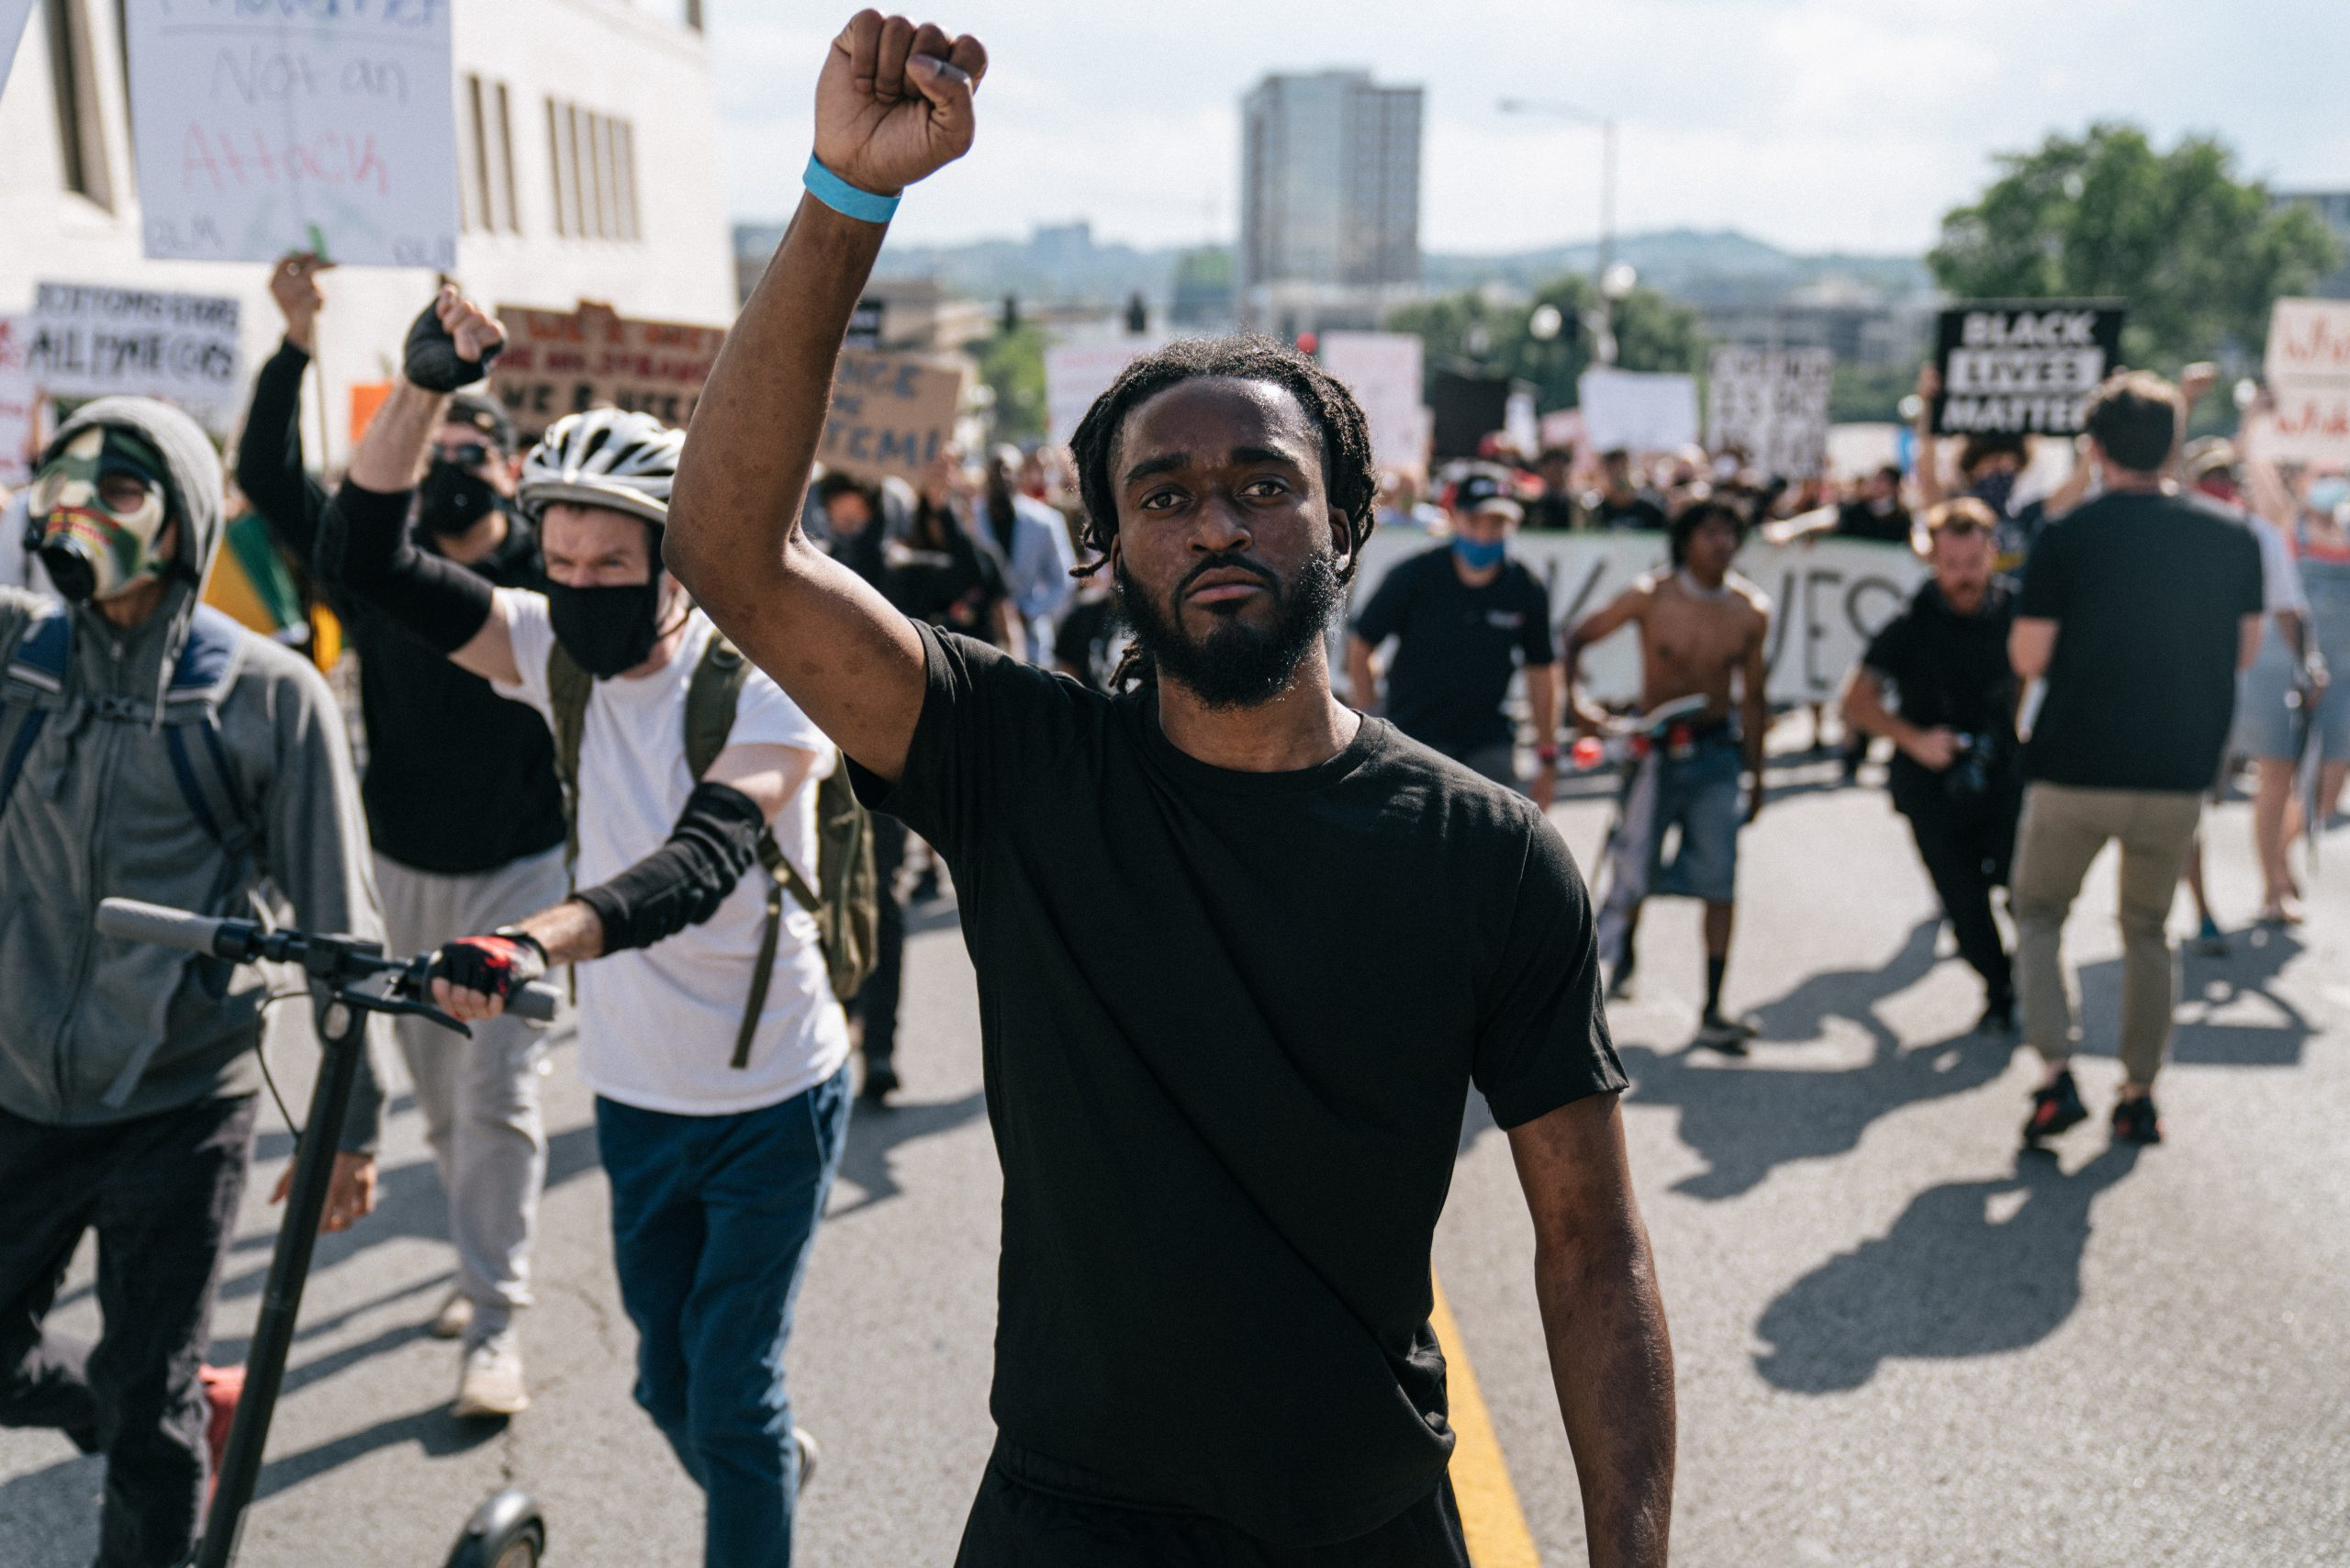 Man at Nashville rally, June 4. (Photo: Alex Kent)